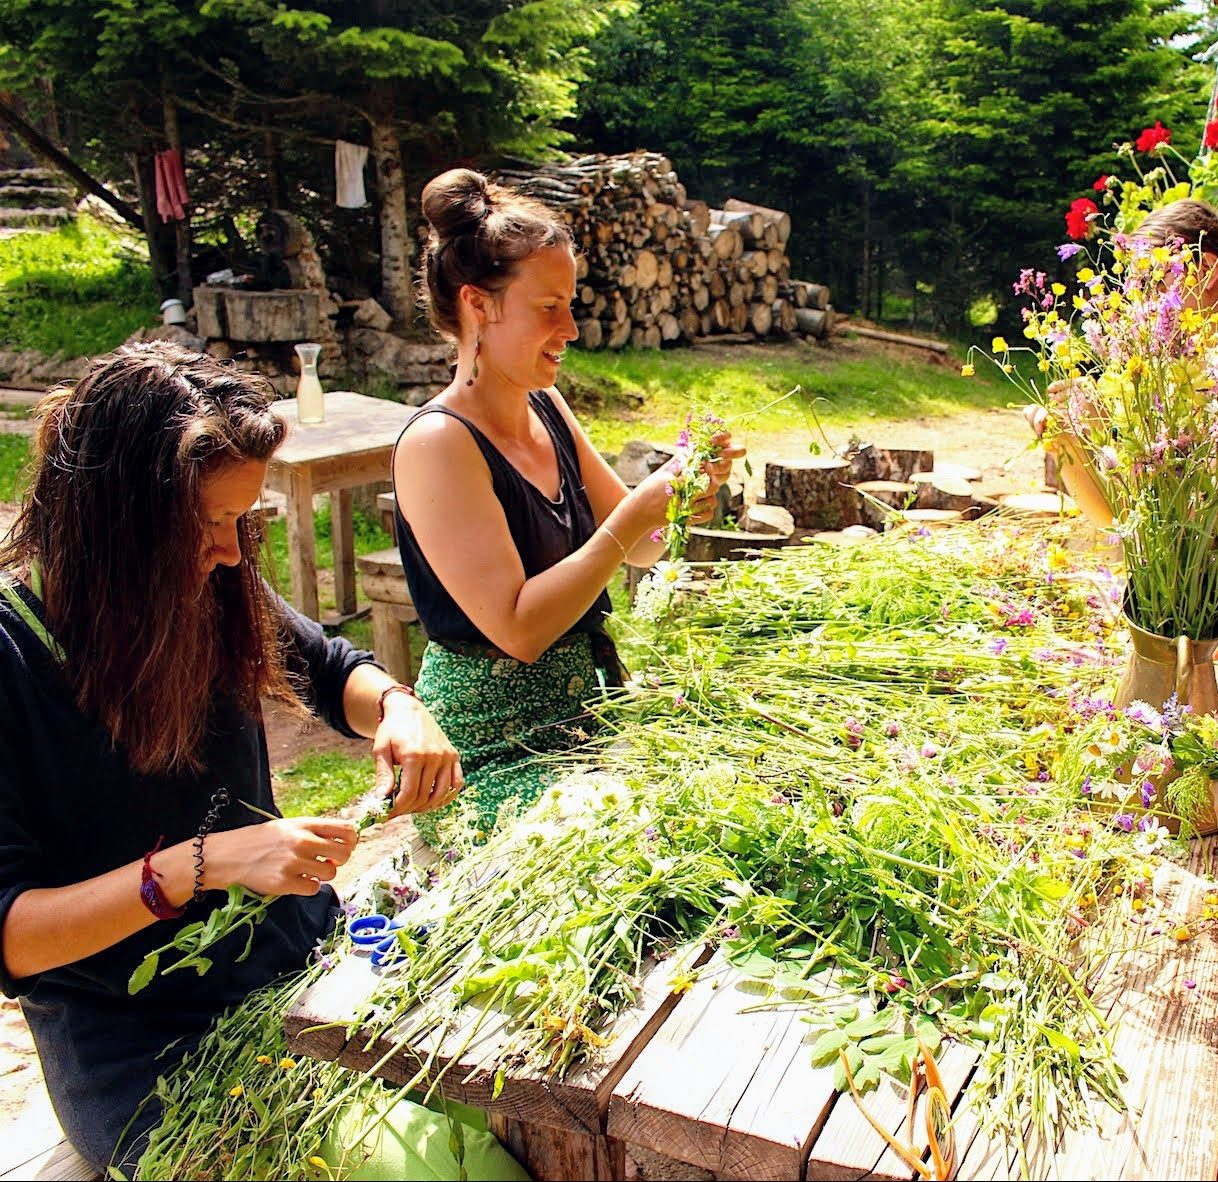 Vukov Konak - Midsummer flower making with guests